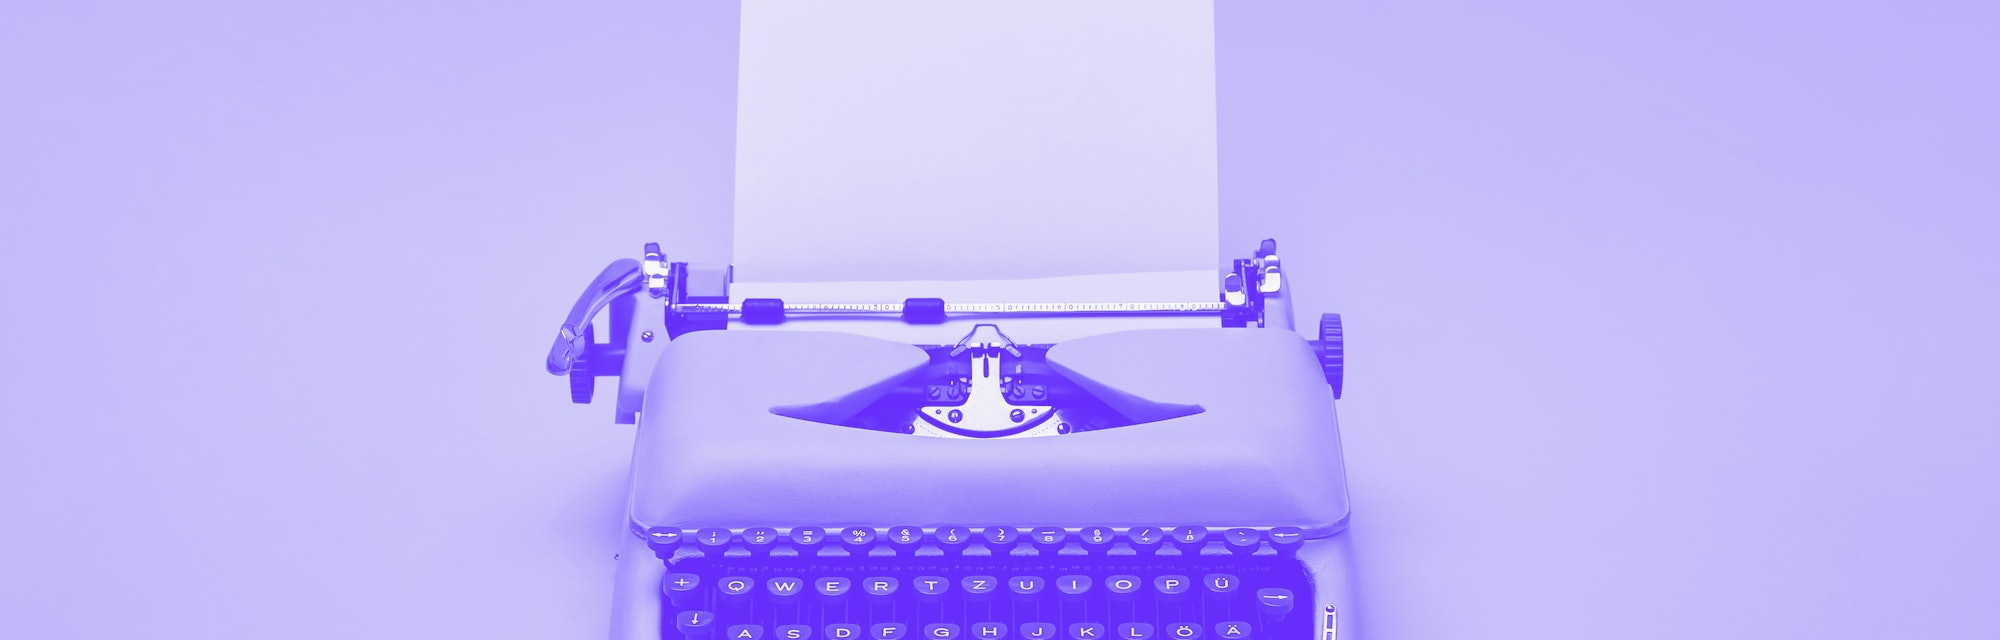 Chic retro typewriter with a paper sheet on the yellow background in the studio.